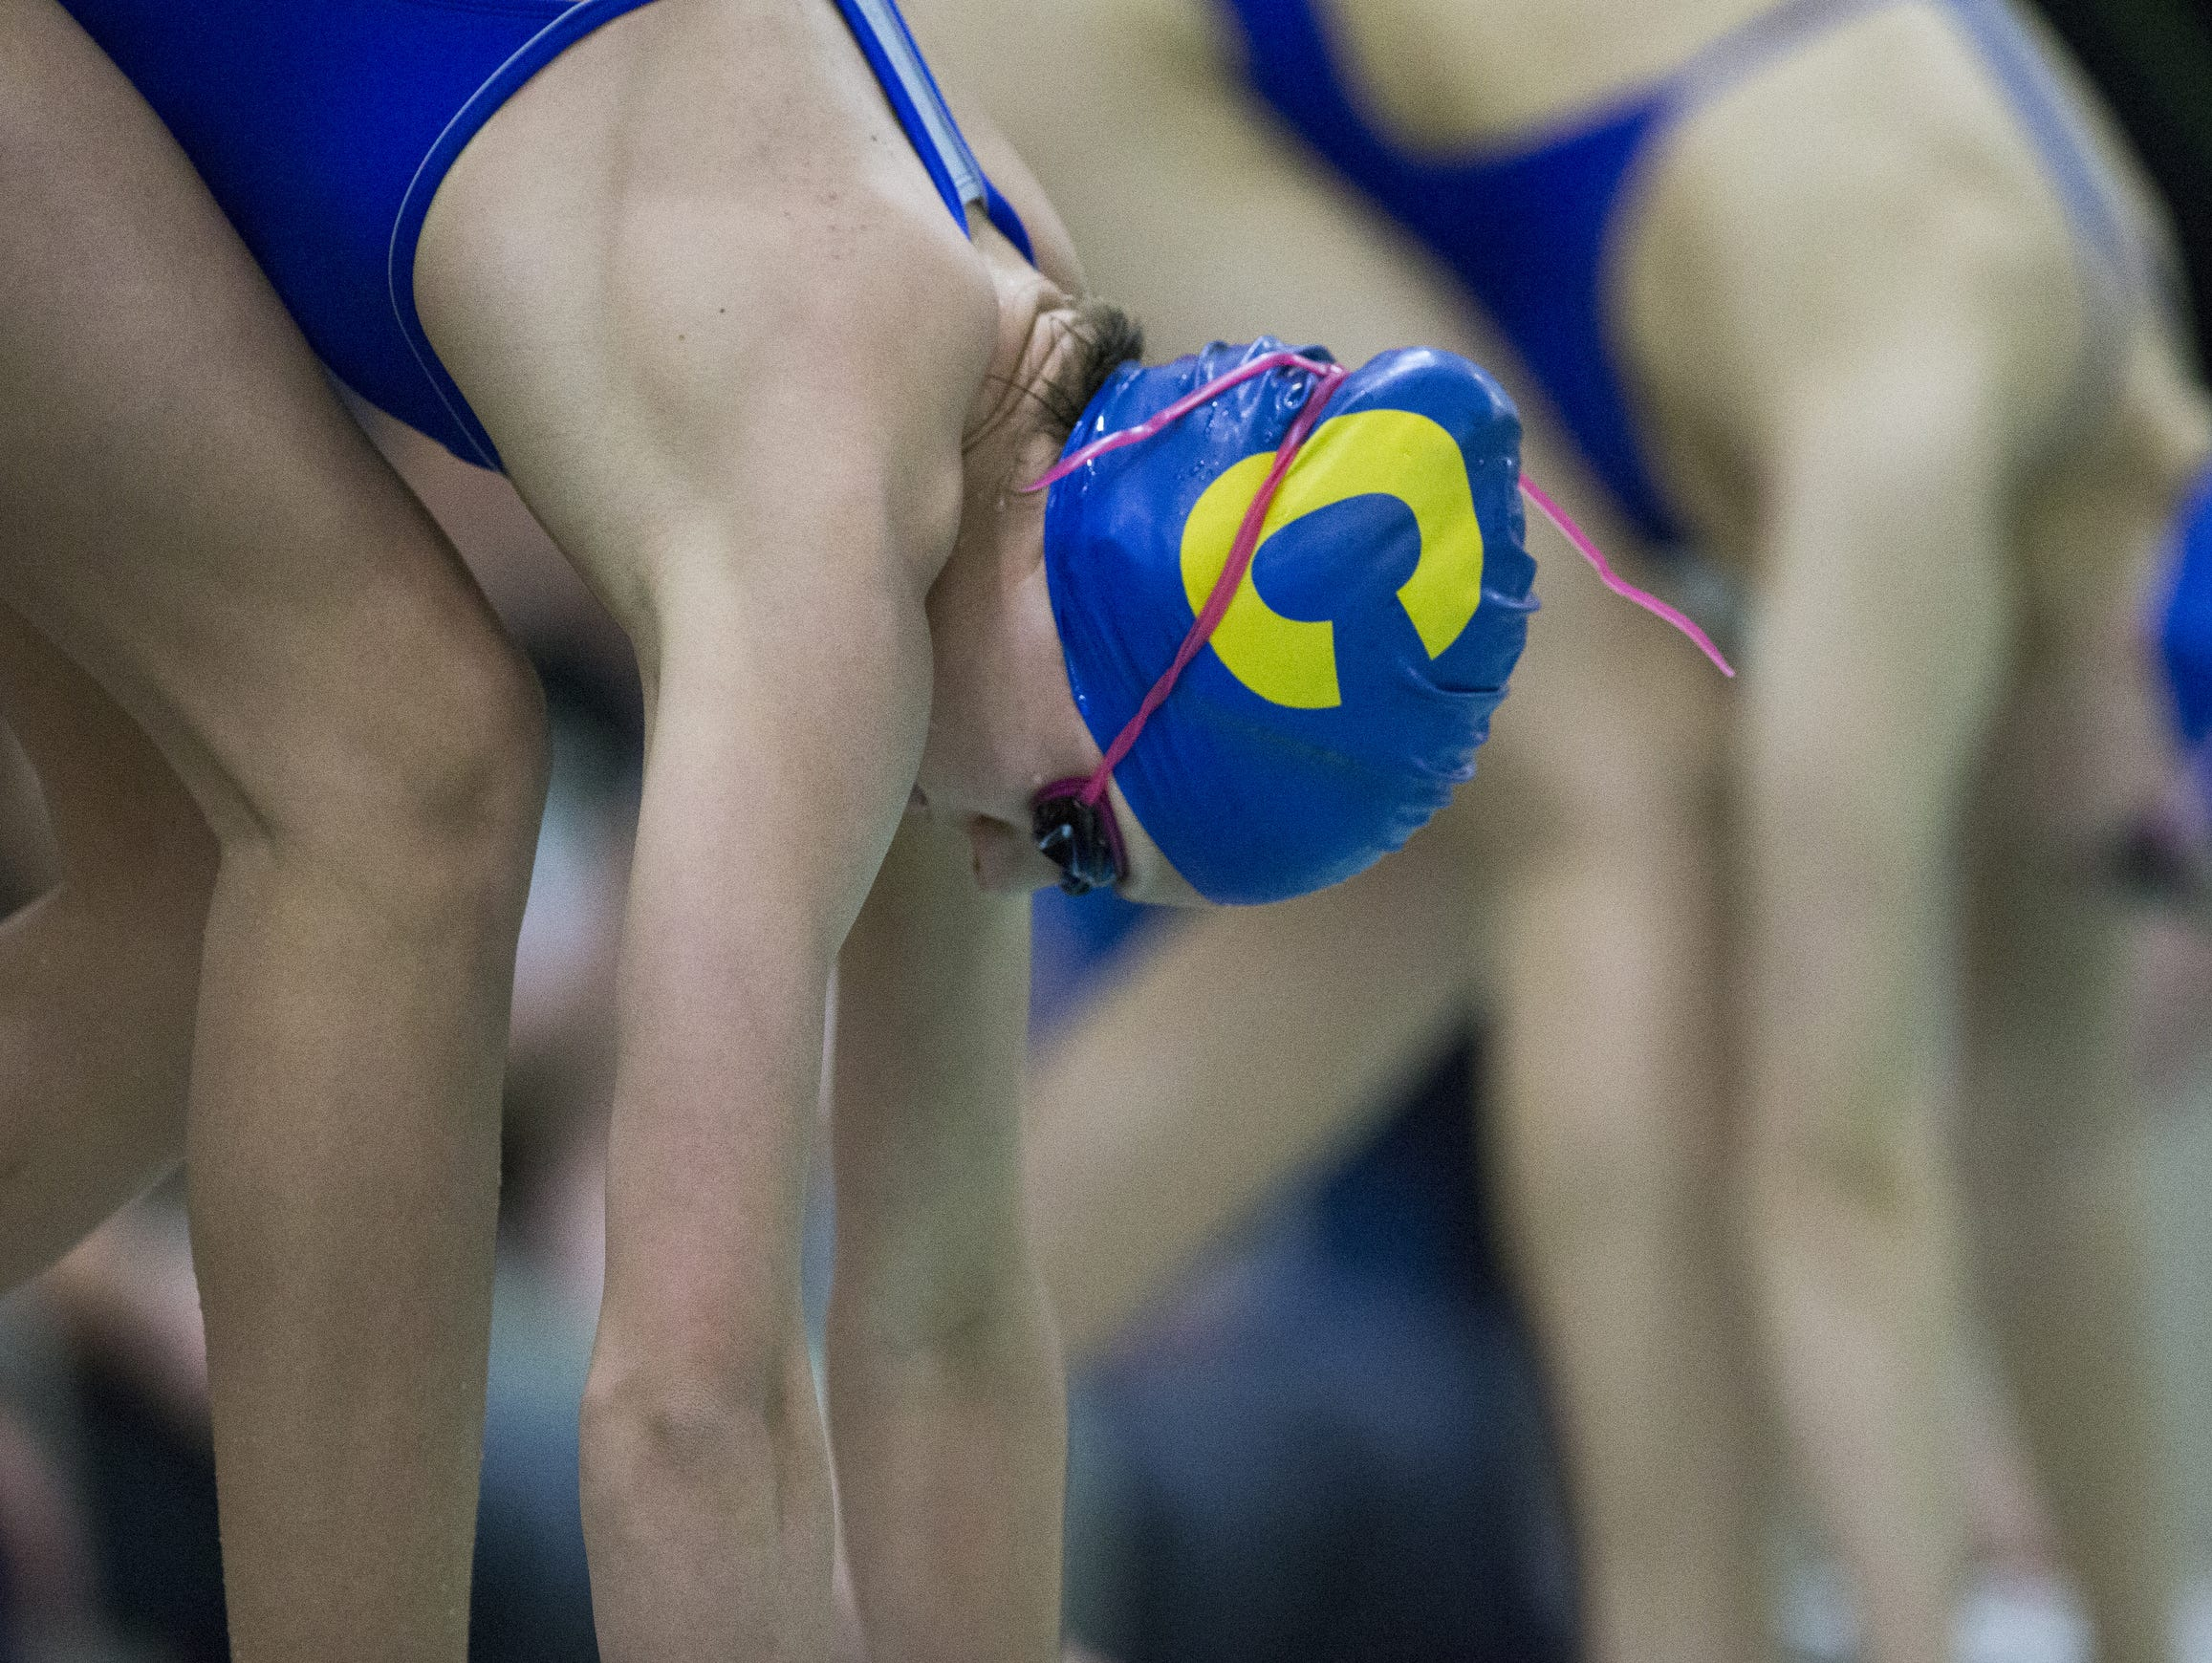 Kelly Pash of Carmel High School, the eventual winner of the 200 yard freestyle, at the starting blocks during the Noblesville sectional, Feb. 6, 2016.